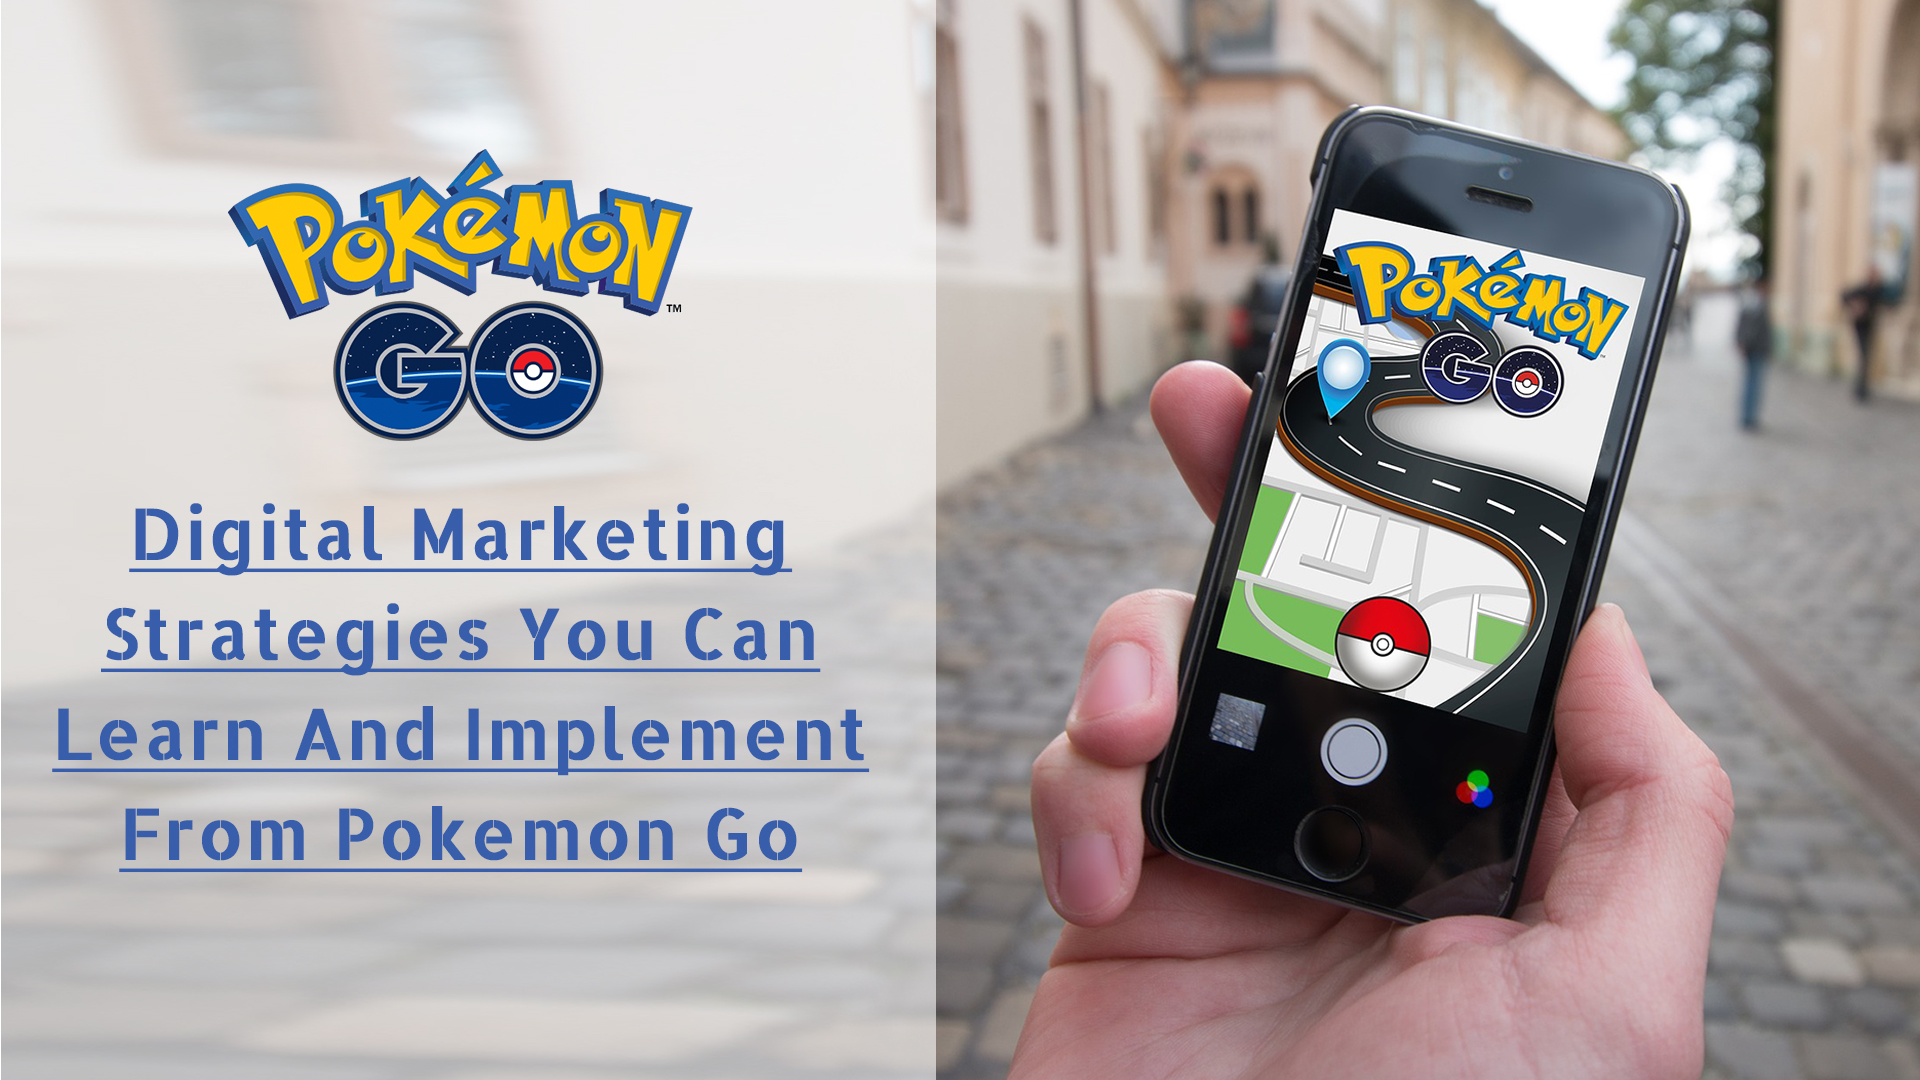 Digital Marketing Strategies You Can Learn And Implement From Pokemon Go